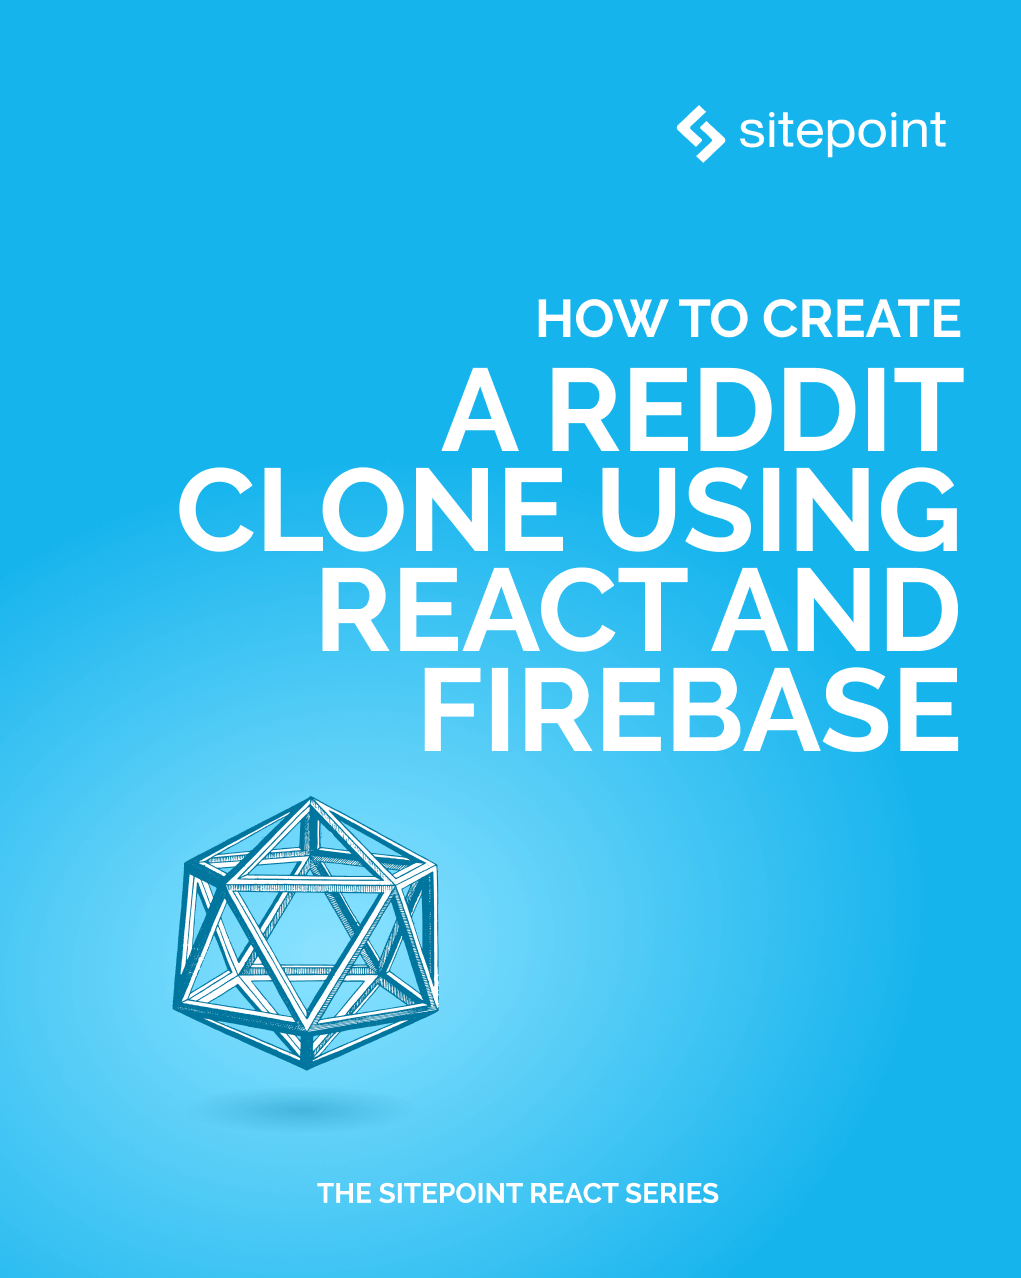 How to Create a Reddit Clone Using React and Firebase